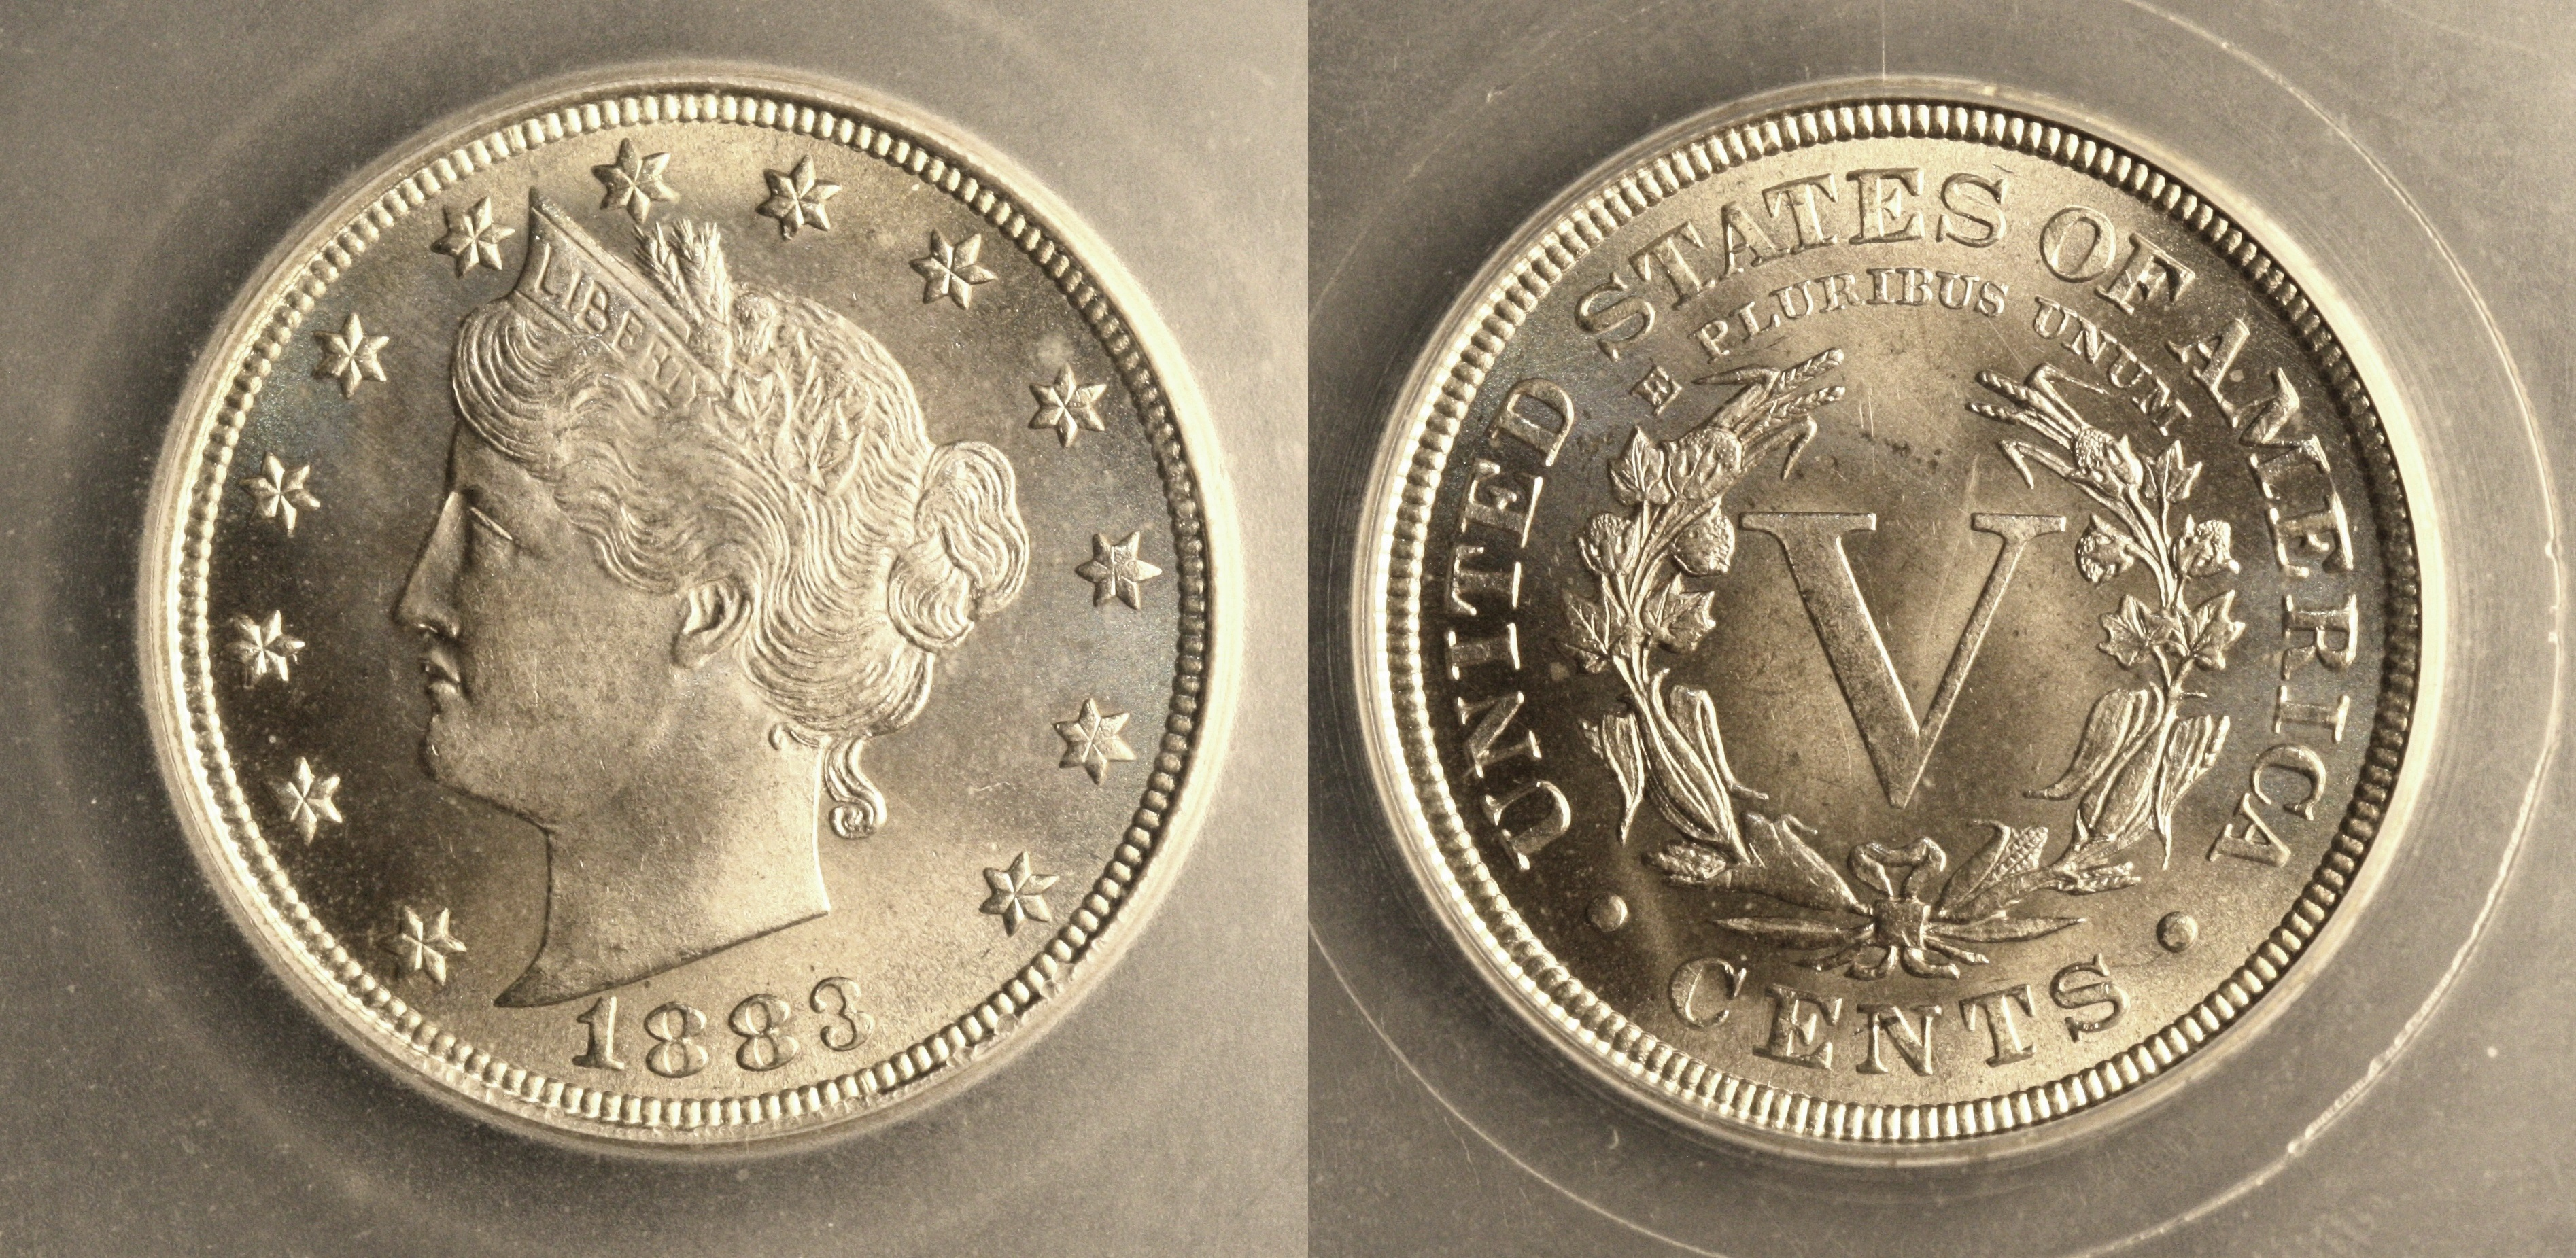 1883 With Cents Liberty Nickel SEGS MS-66 camera